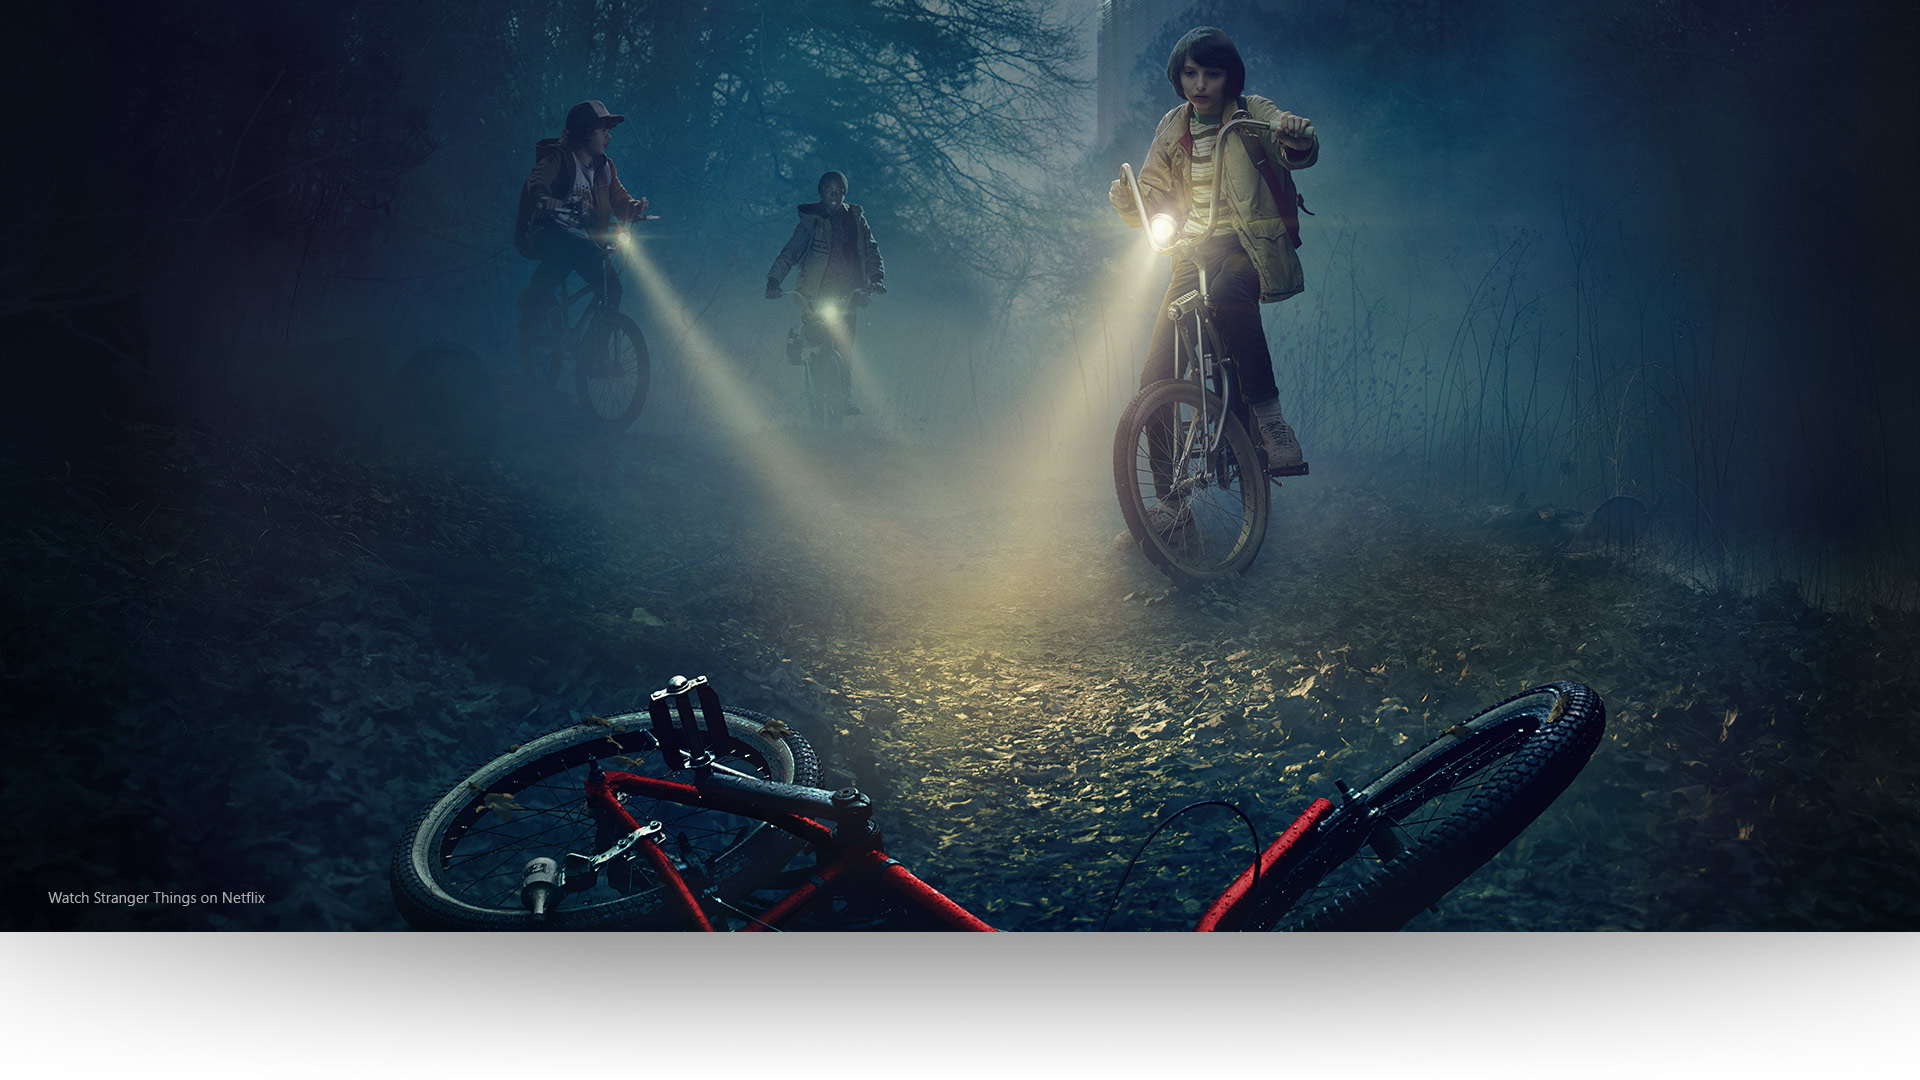 A scene from Stranger things where the kids discover a bike in the woods